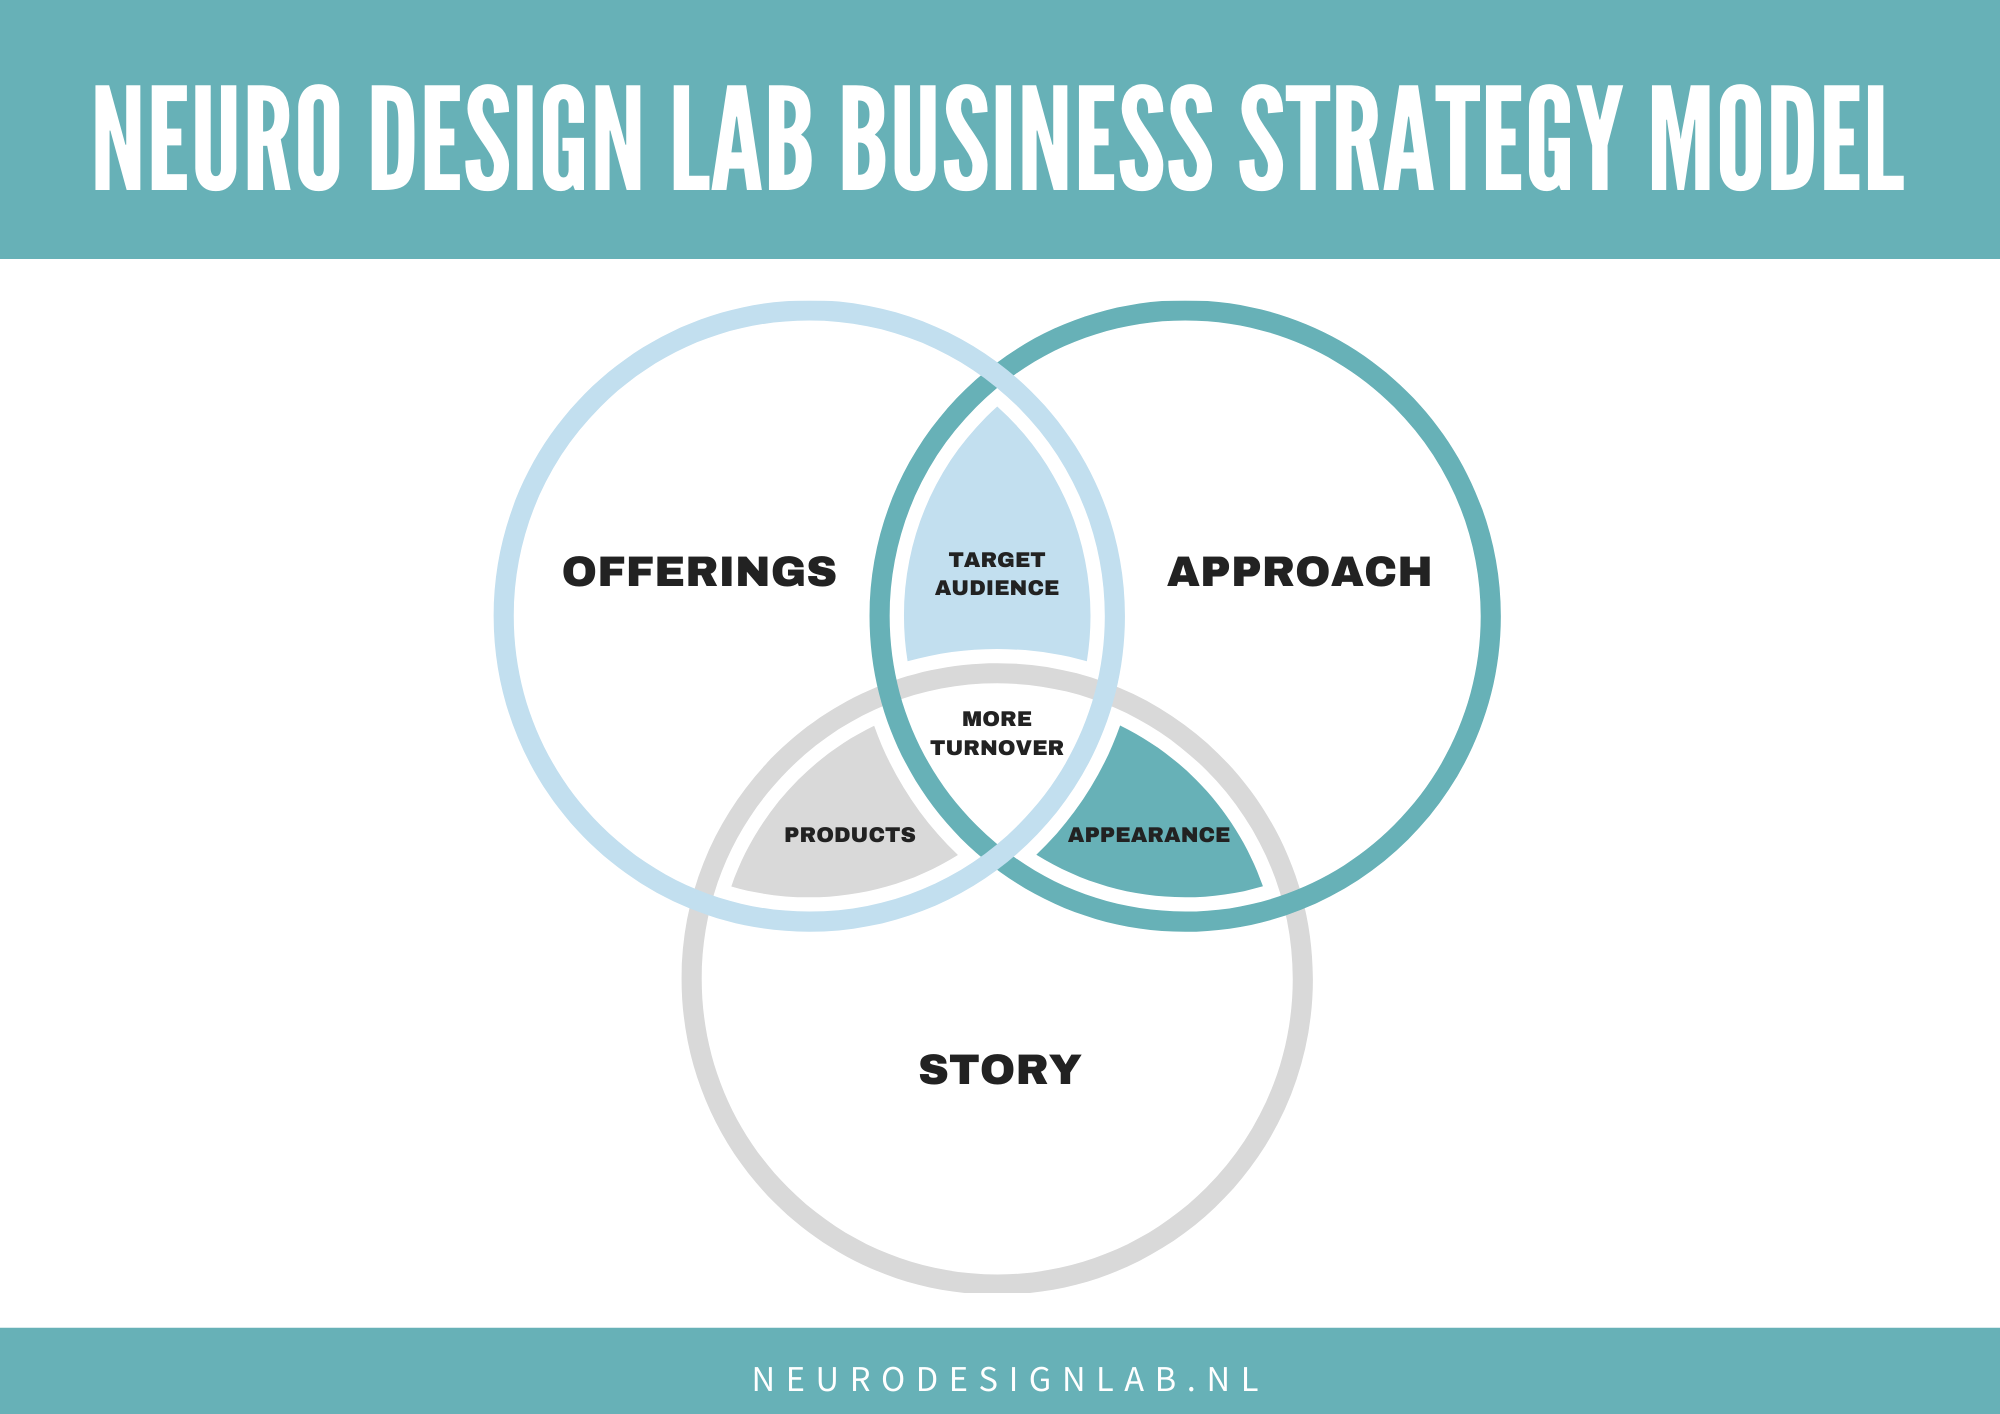 business case format, strategic advice format, business plan a4 sjabloon, business plan a4 format, strategic example